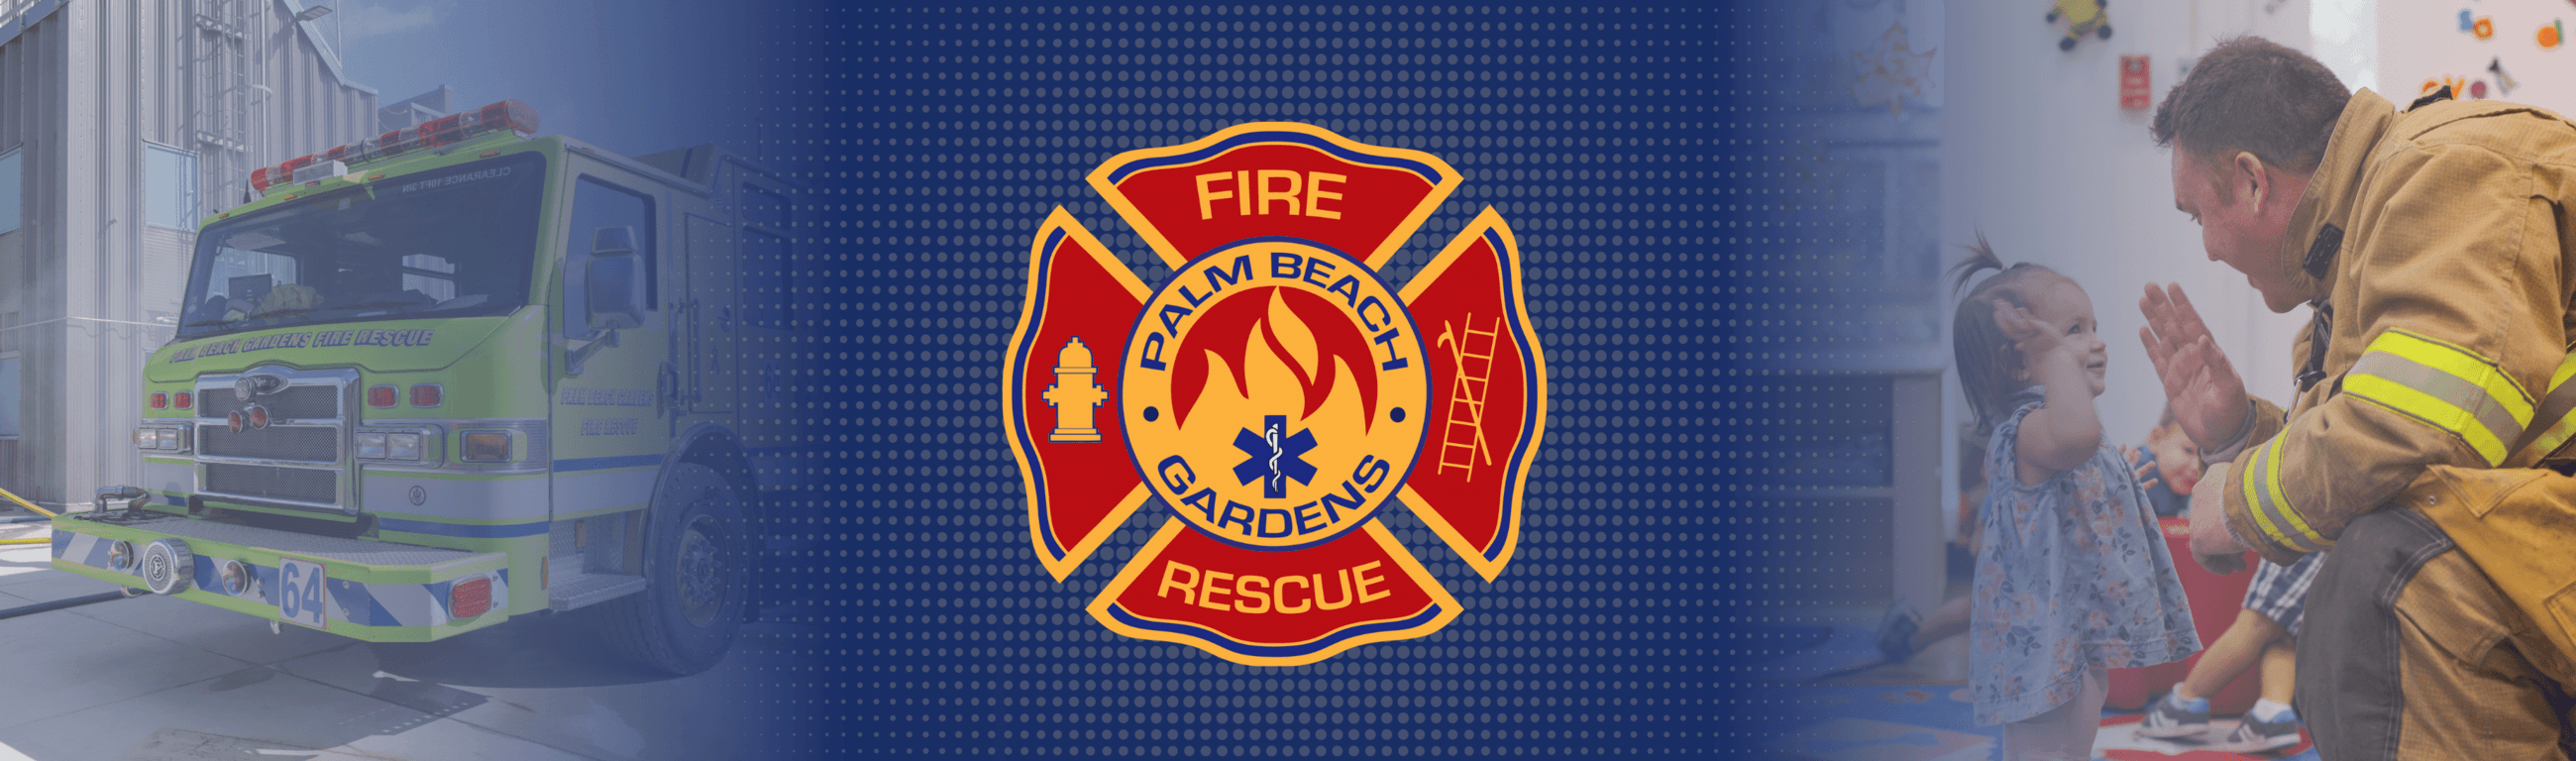 Palm Beach Gardens Fire Rescue